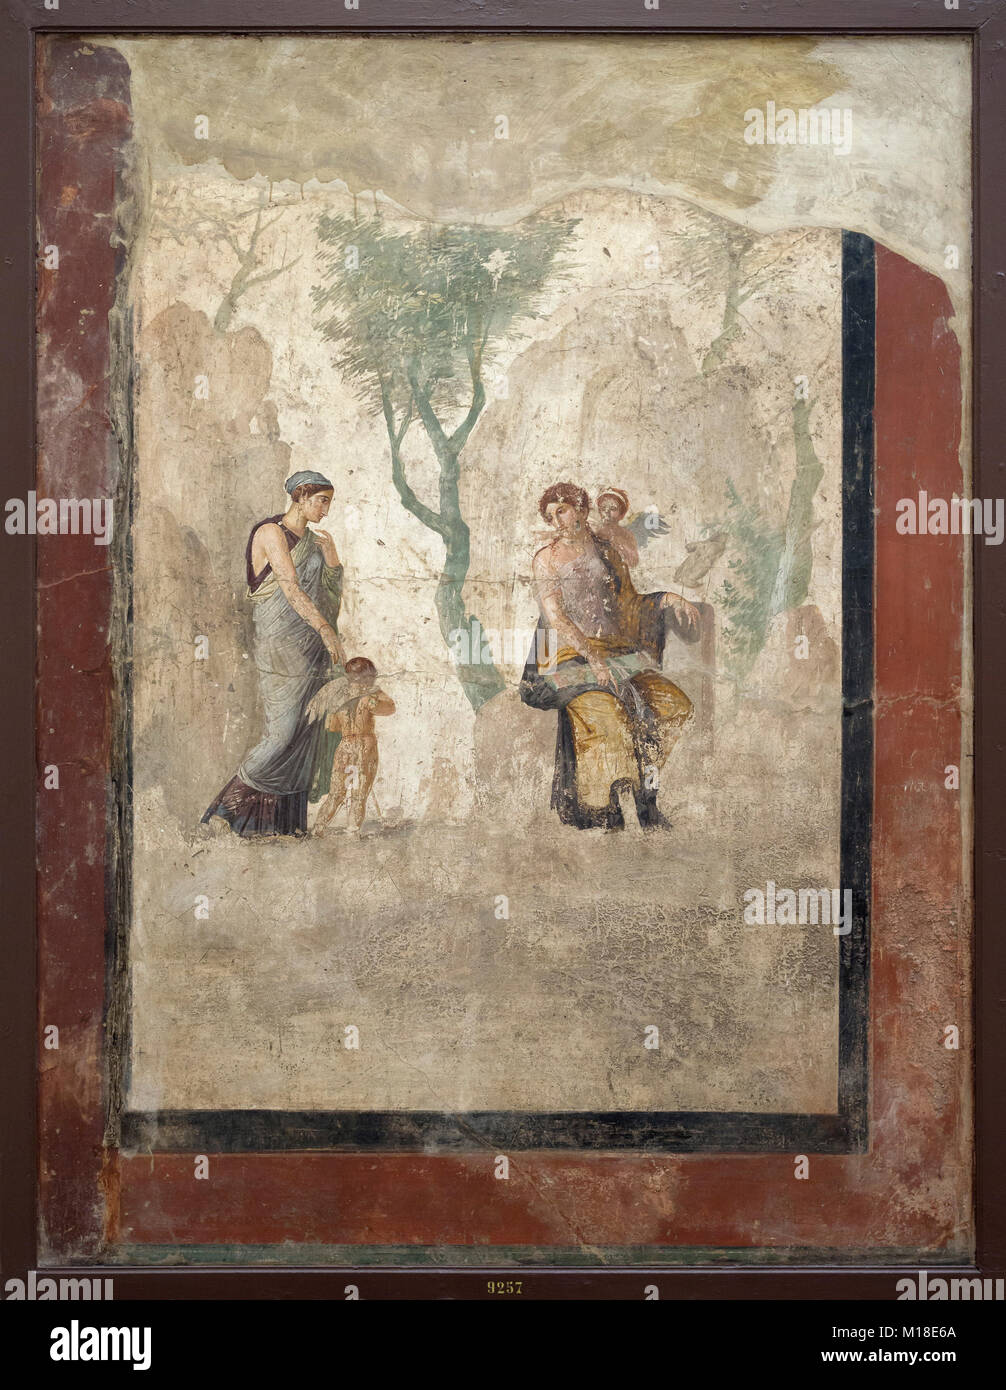 Naples. Italy. Fresco of Eros (Love) being punished in the presence of Aphrodite (Venus). Museo Archeologico Nazionale - Stock Image